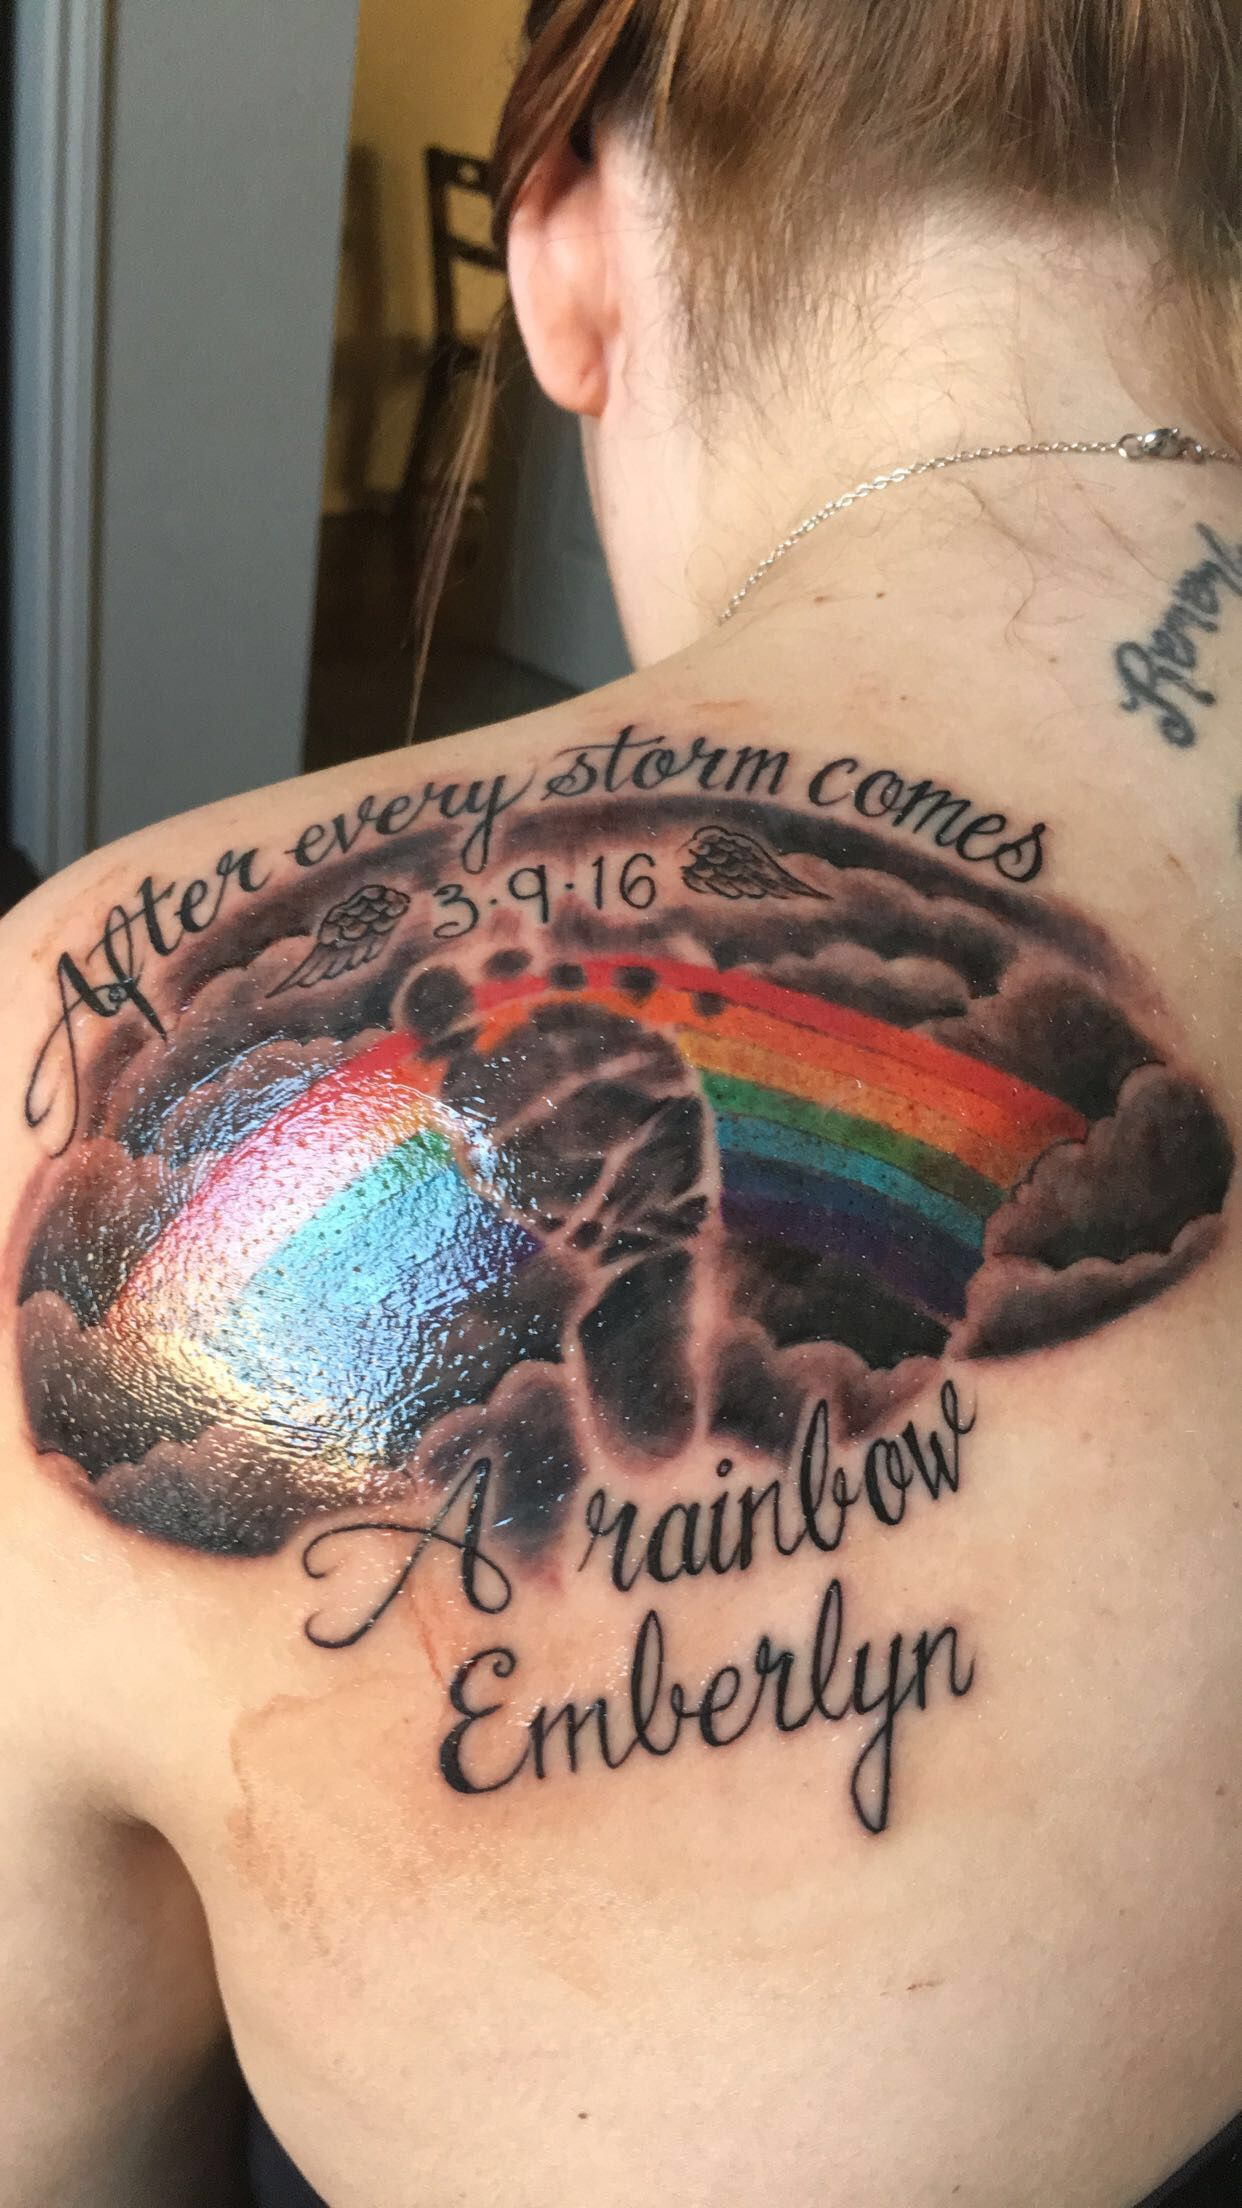 30 Meaningful Tattoos That Memorialize Miscarriage